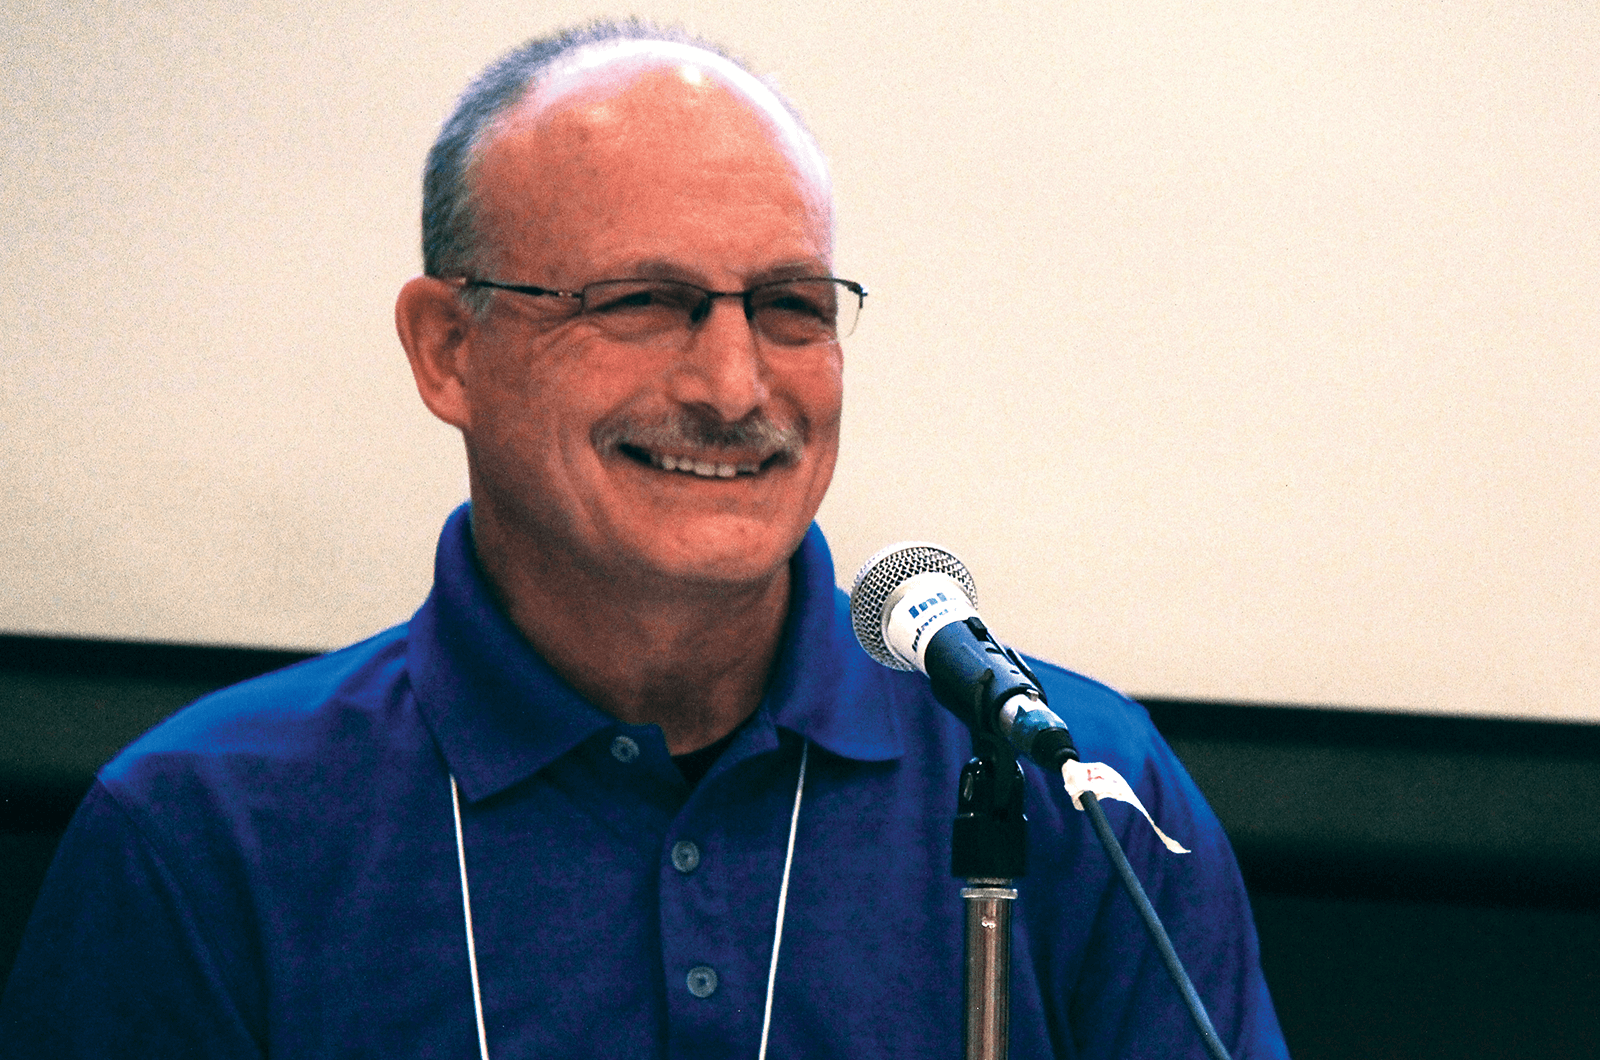 Man in blue shirt smiling in front of microphone